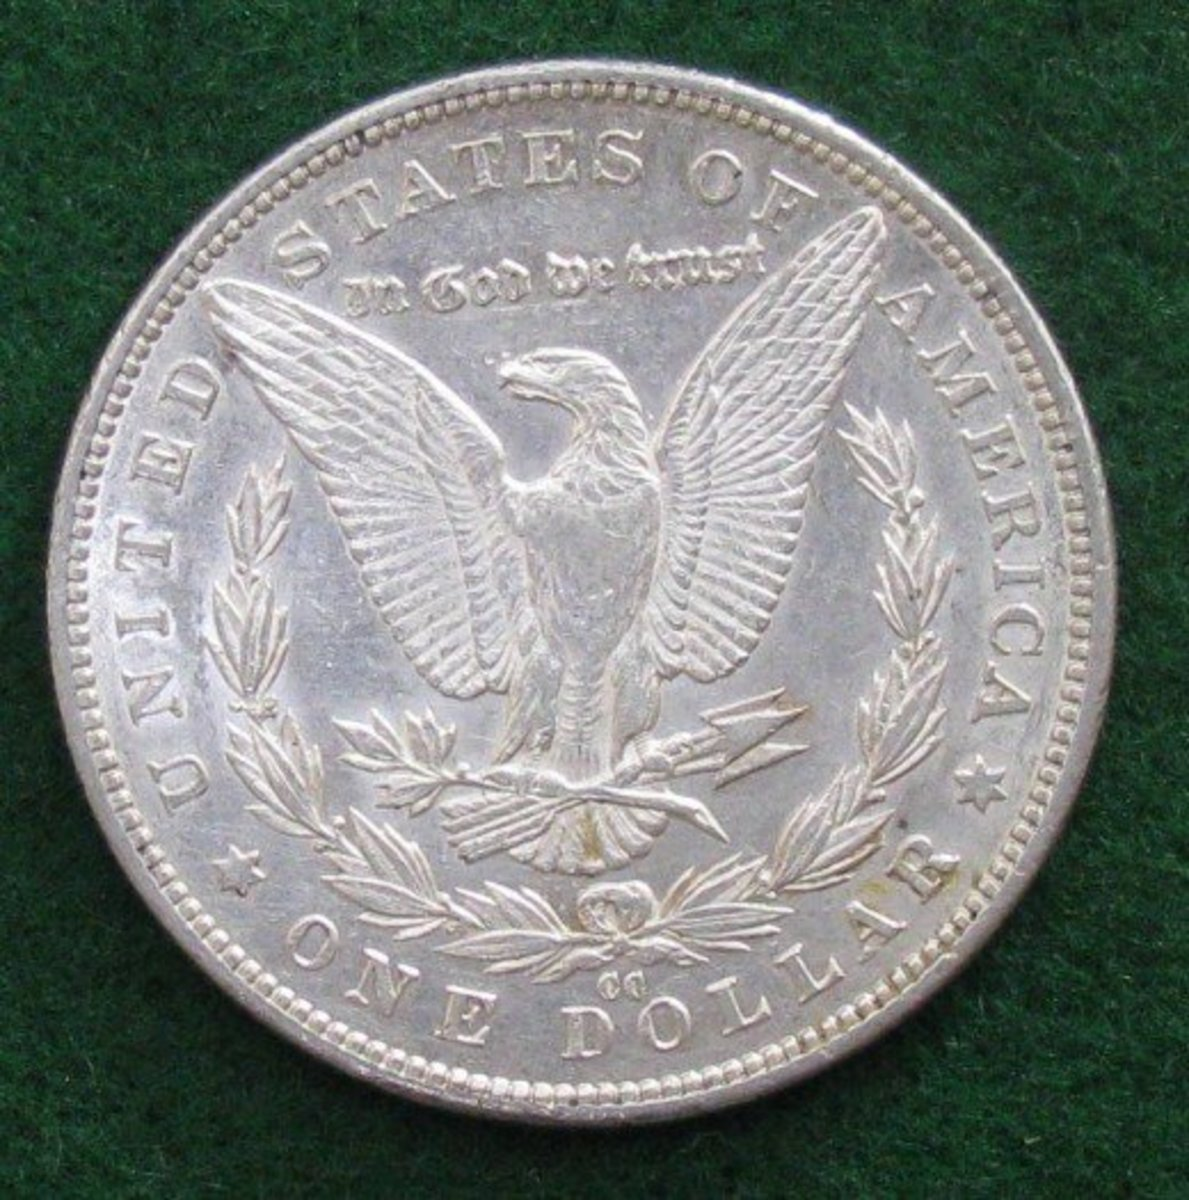 Reverse of Morgan Dollar showing the CC mint mark below the eagle.